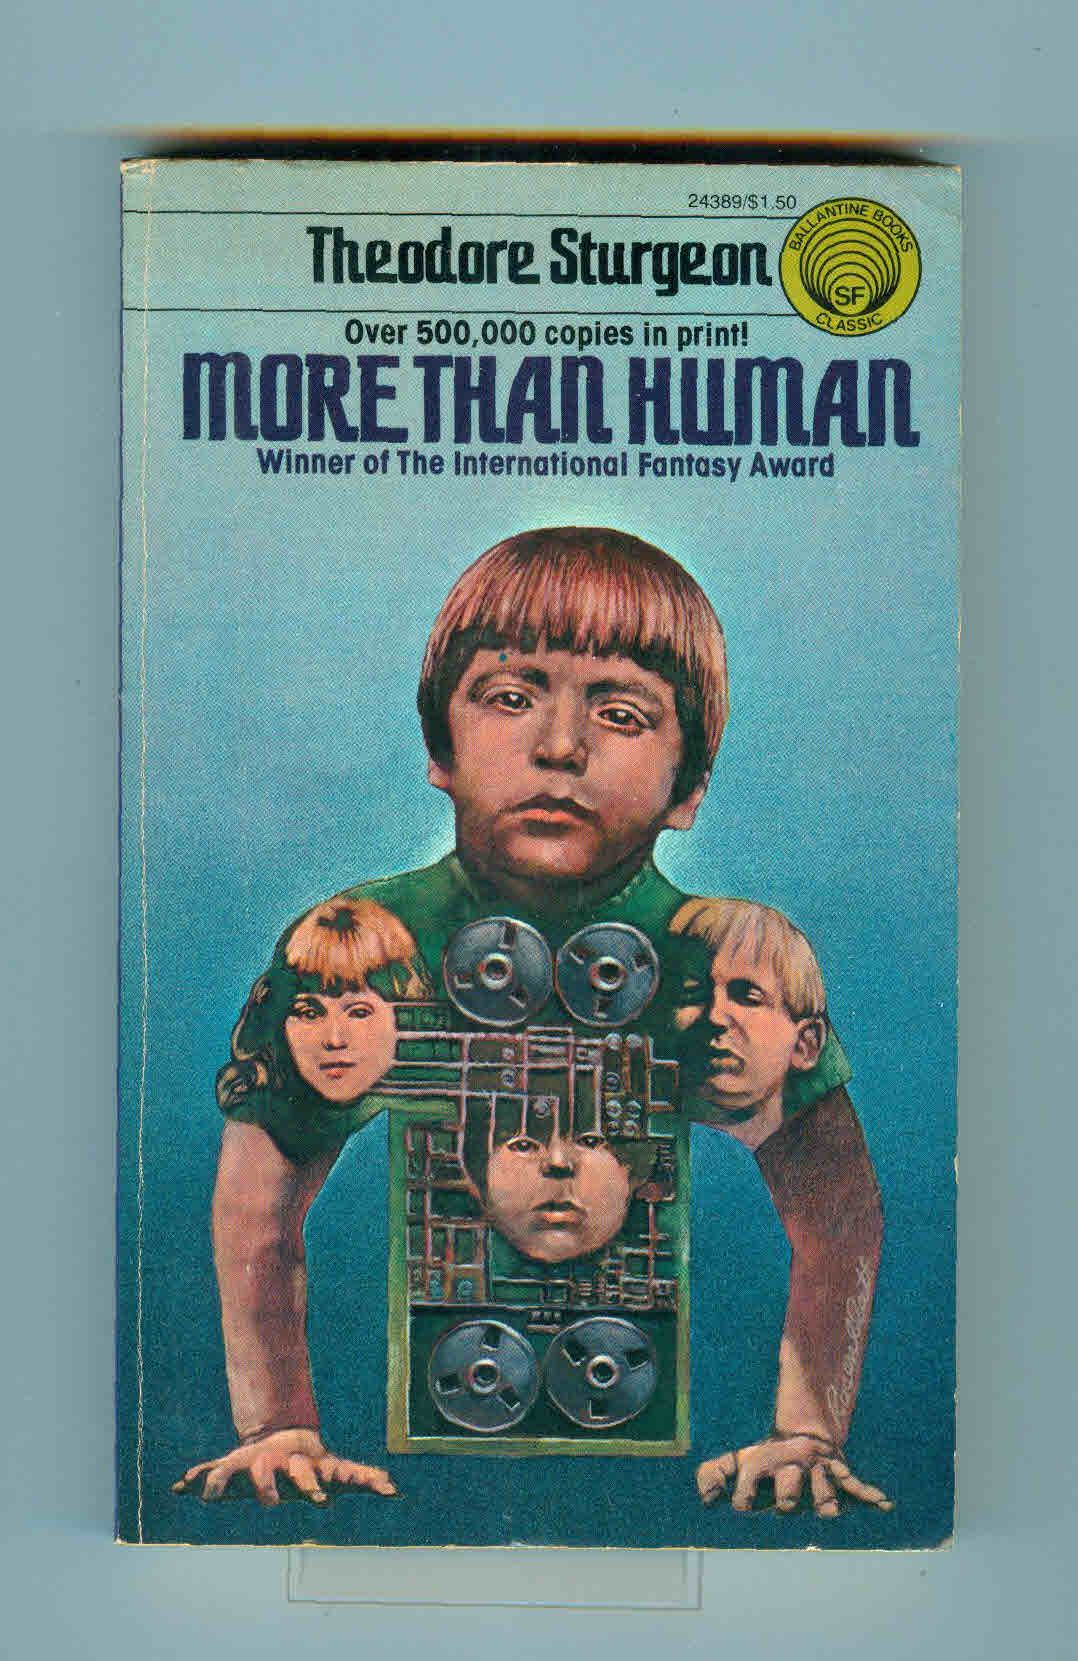 More Than Human (bookcover)